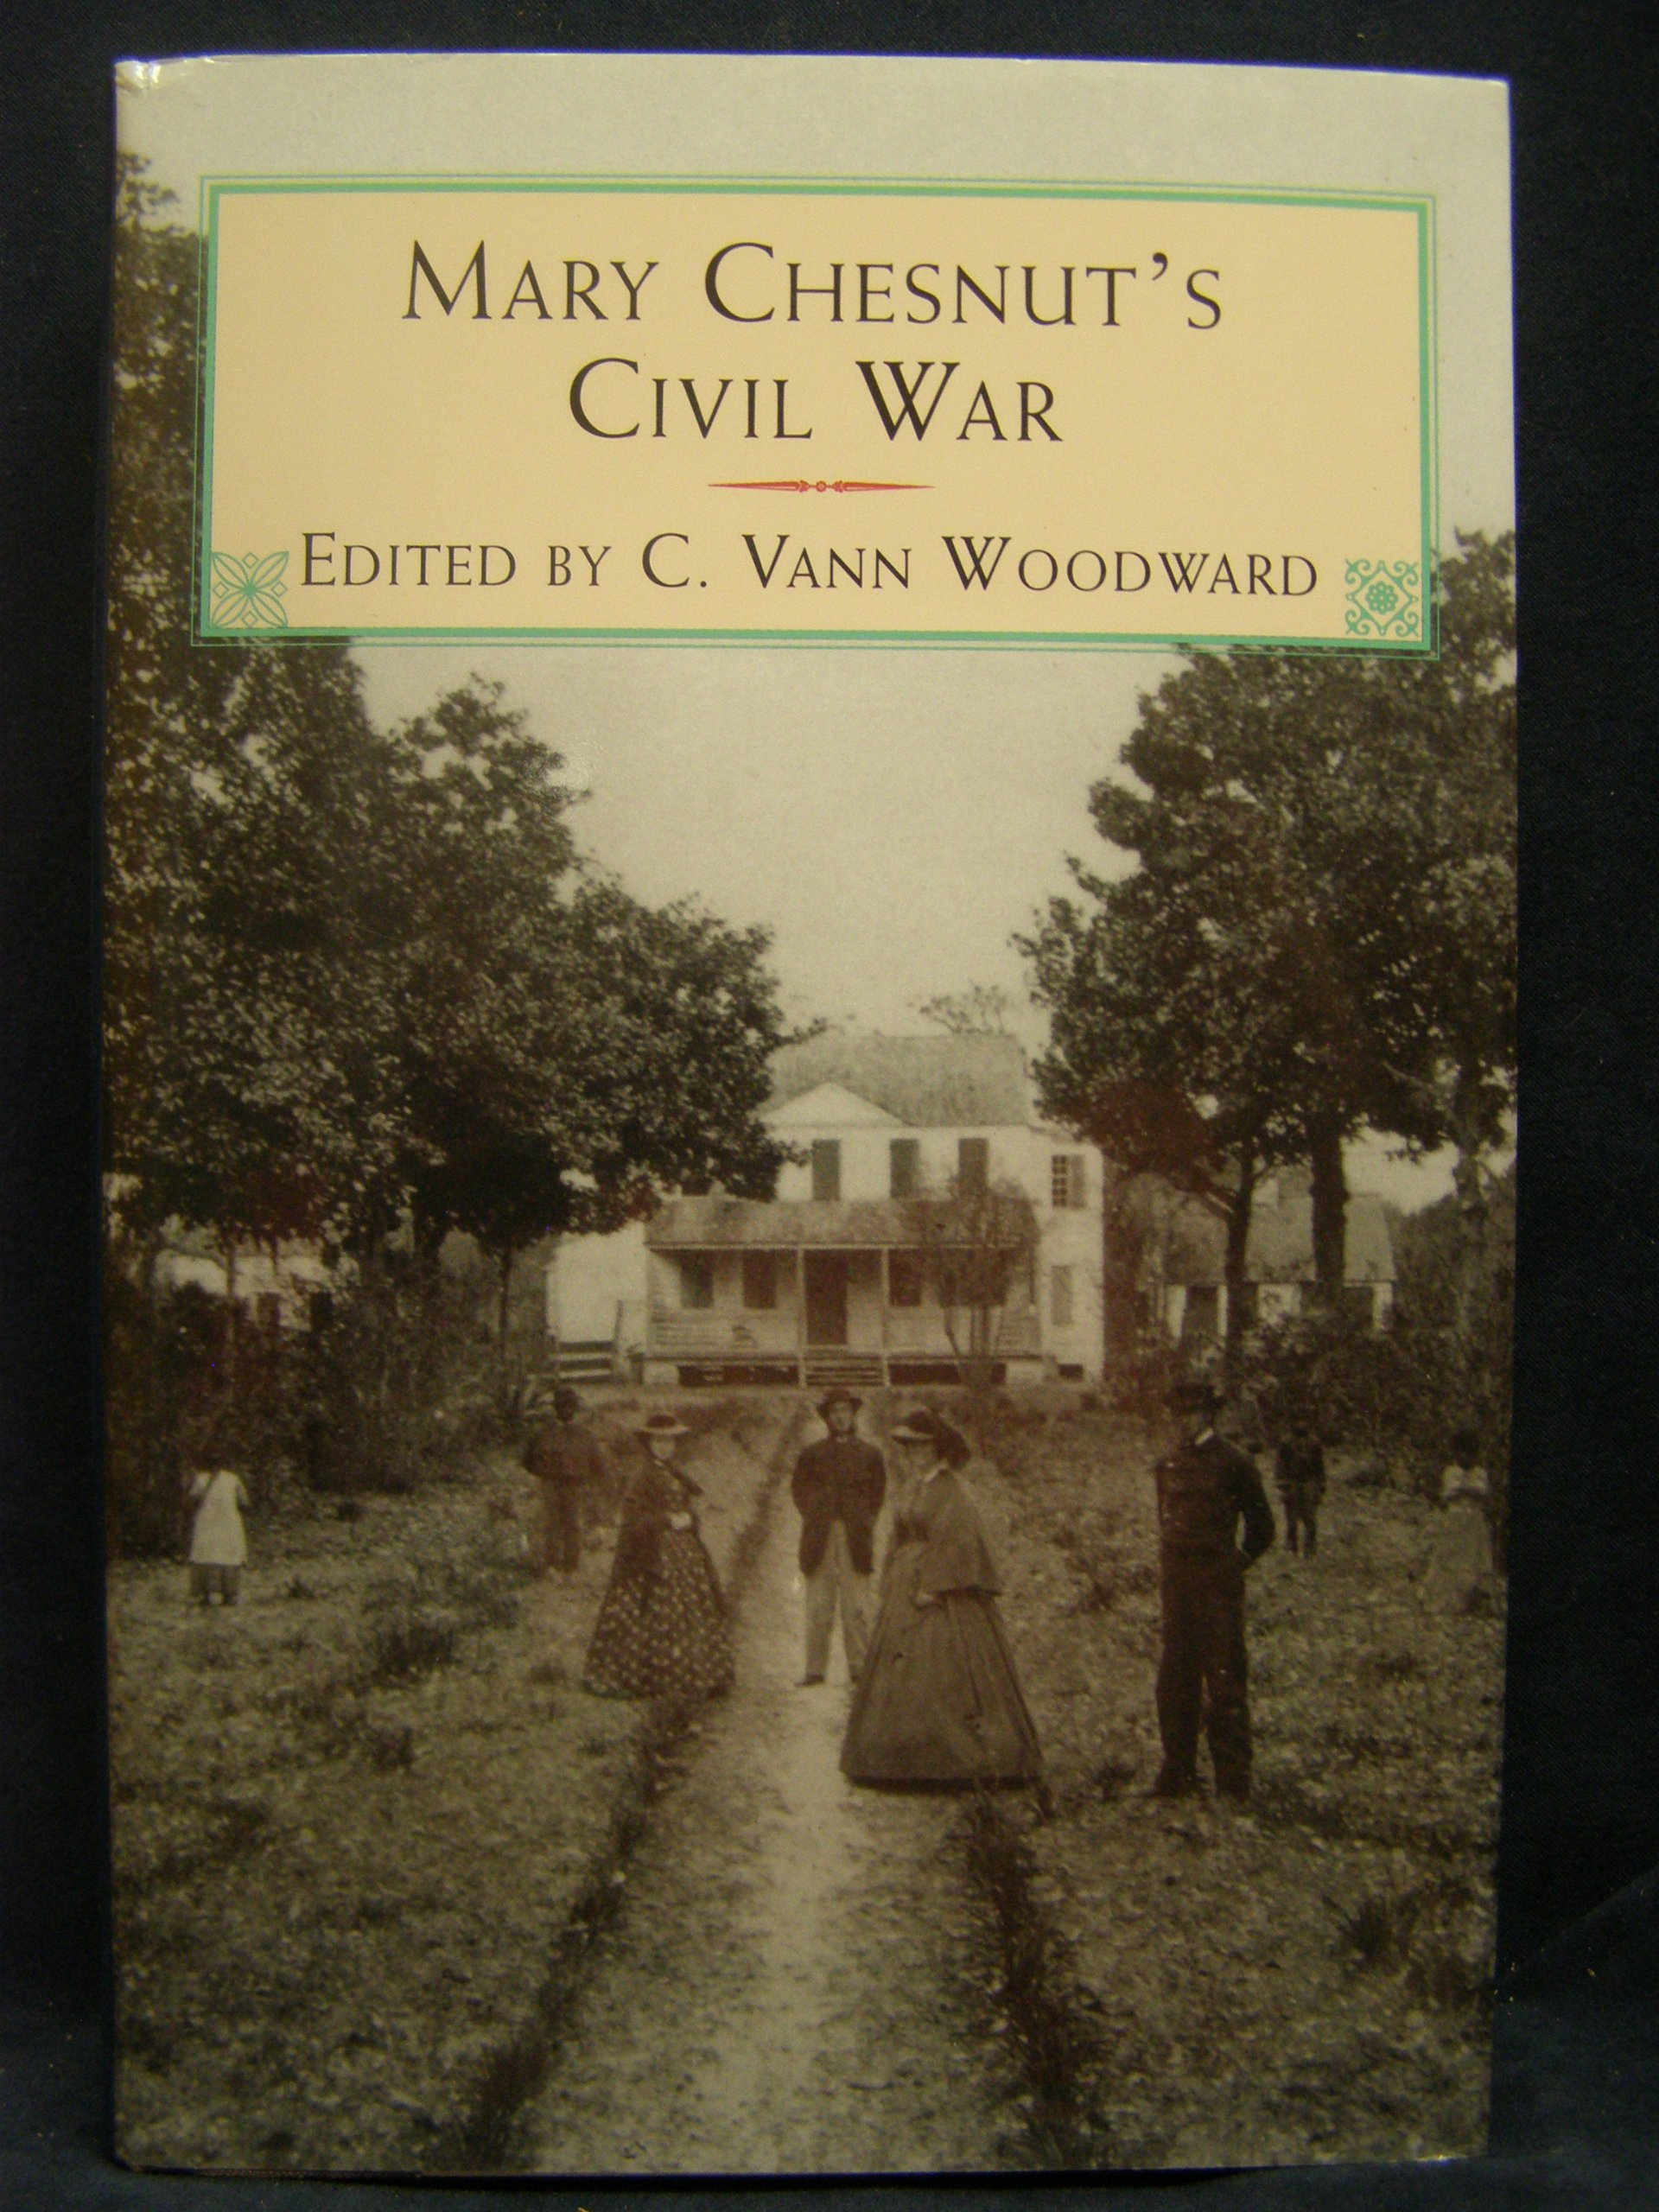 Mary Chesnut's Civil War